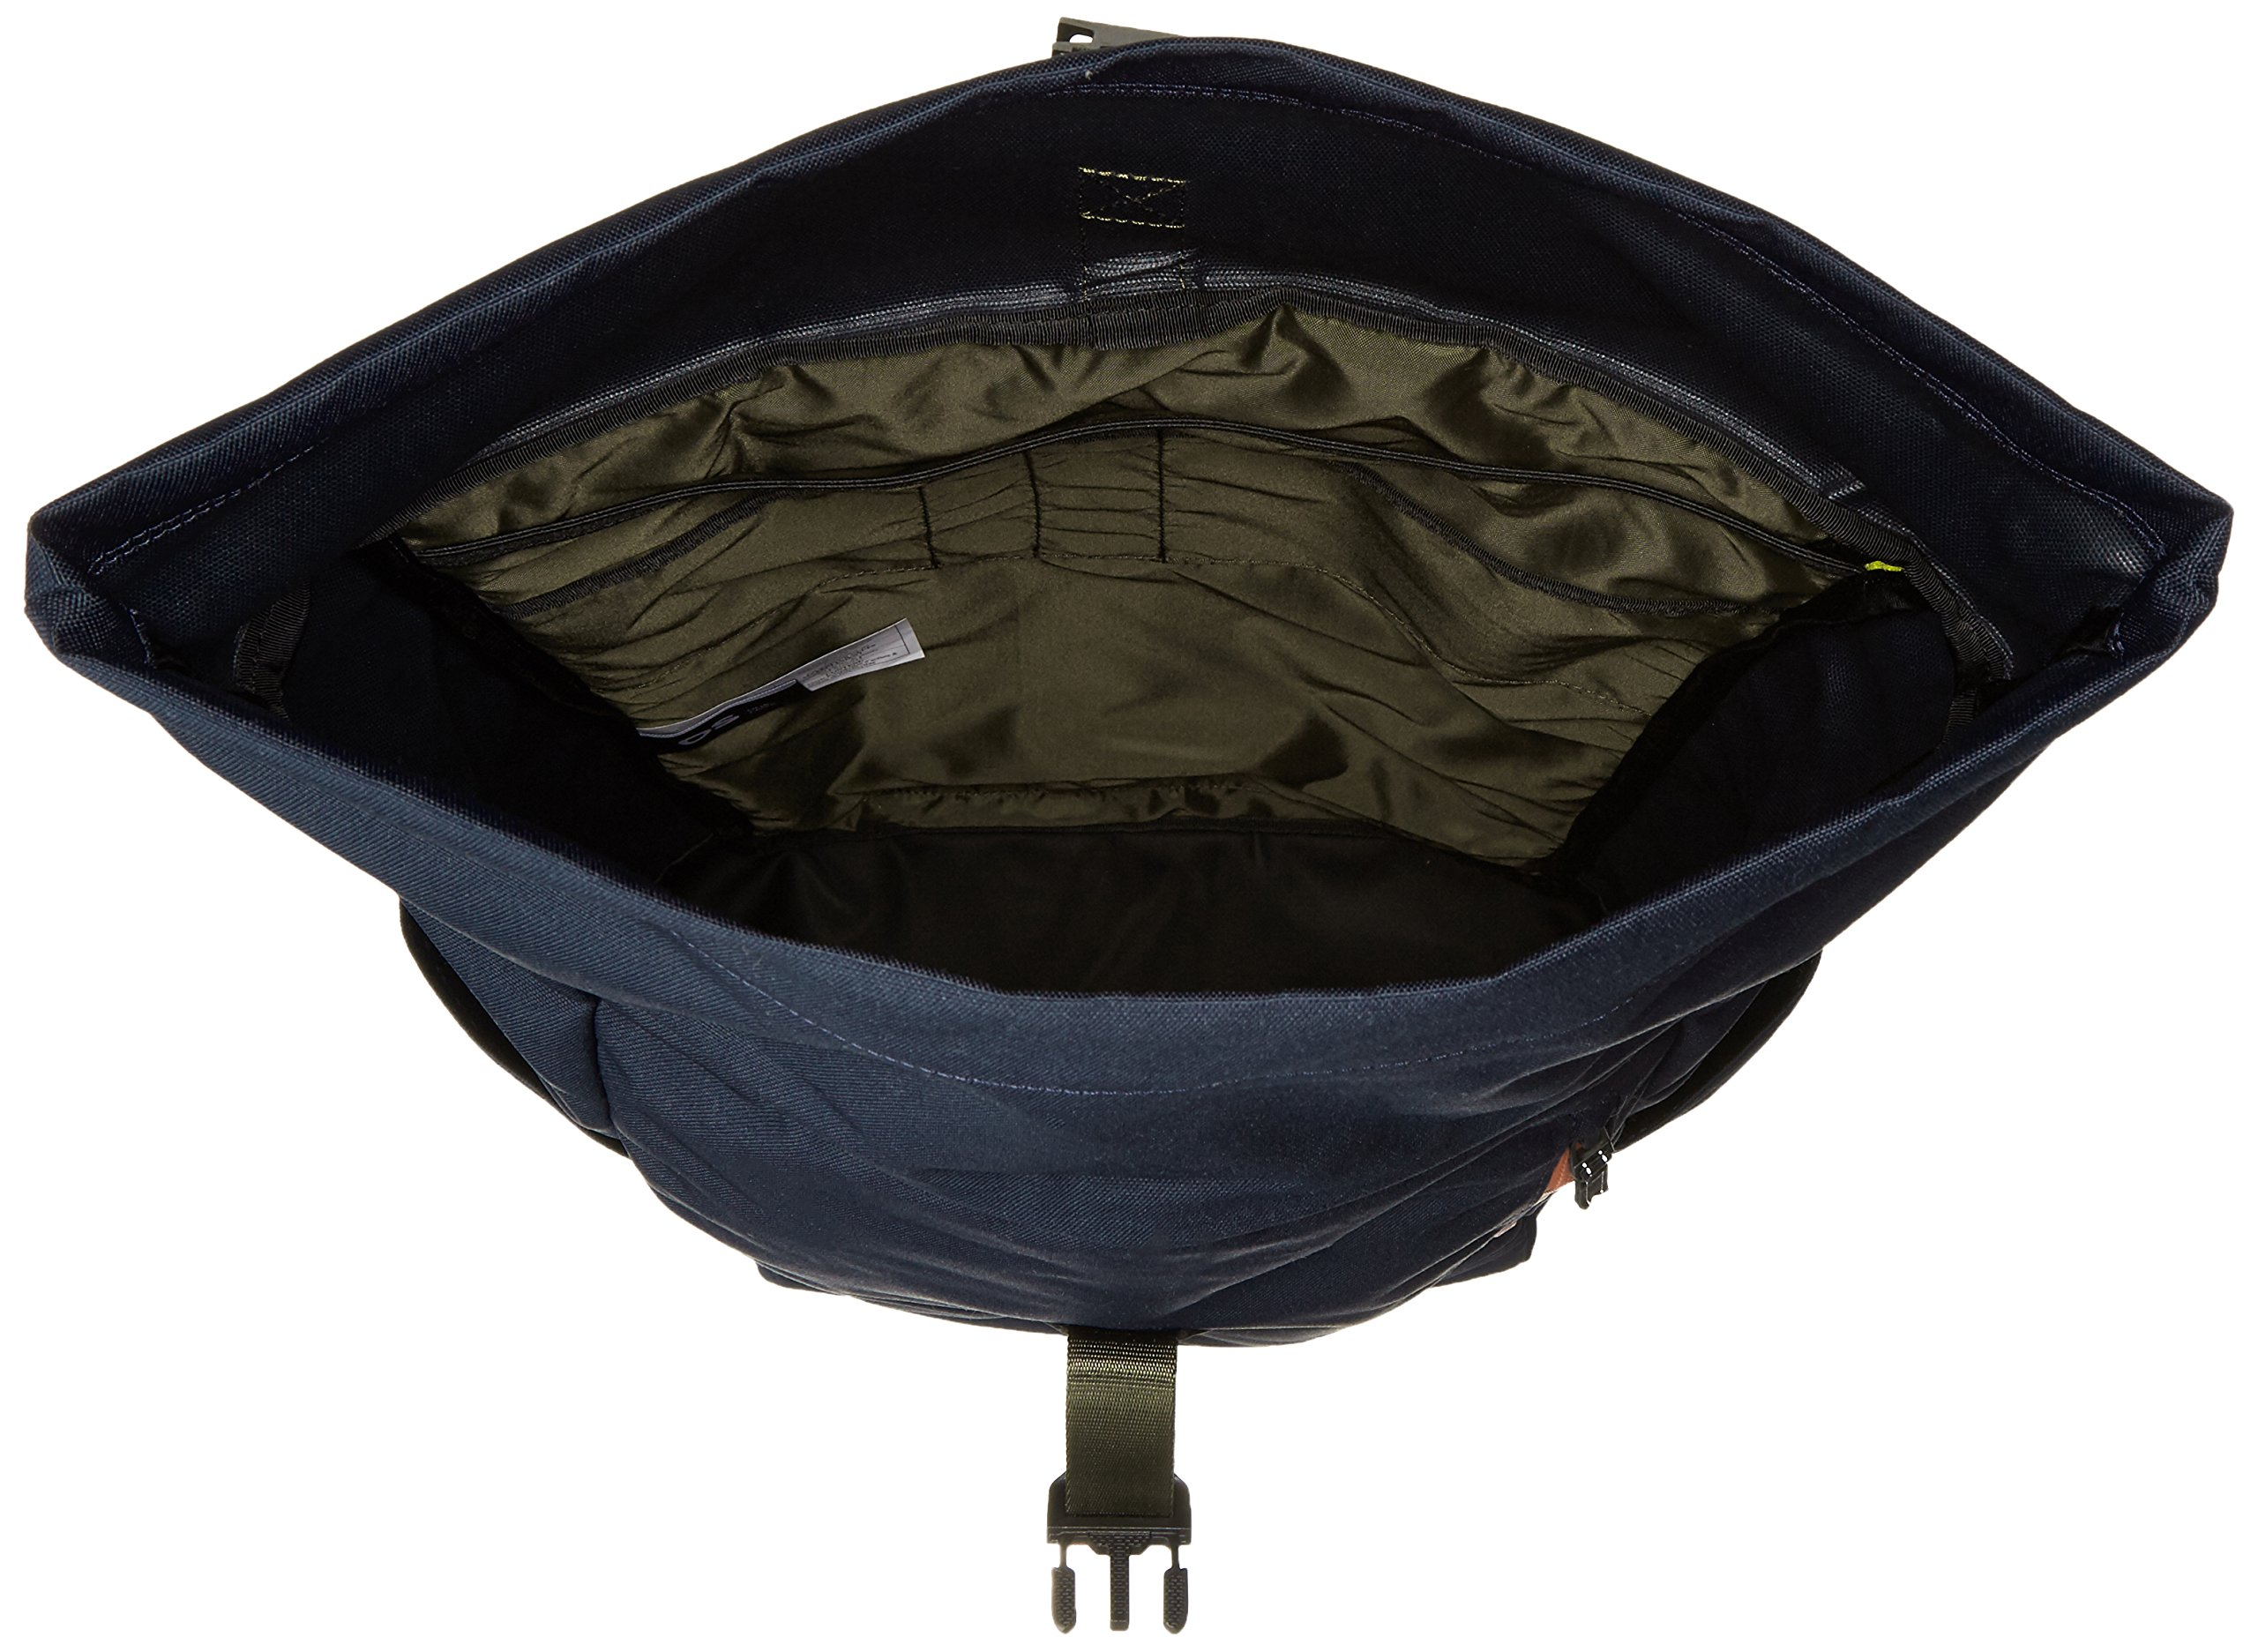 Timbuk2 Tuck Pack, Nautical/Bixi, One Size by Timbuk2 (Image #7)